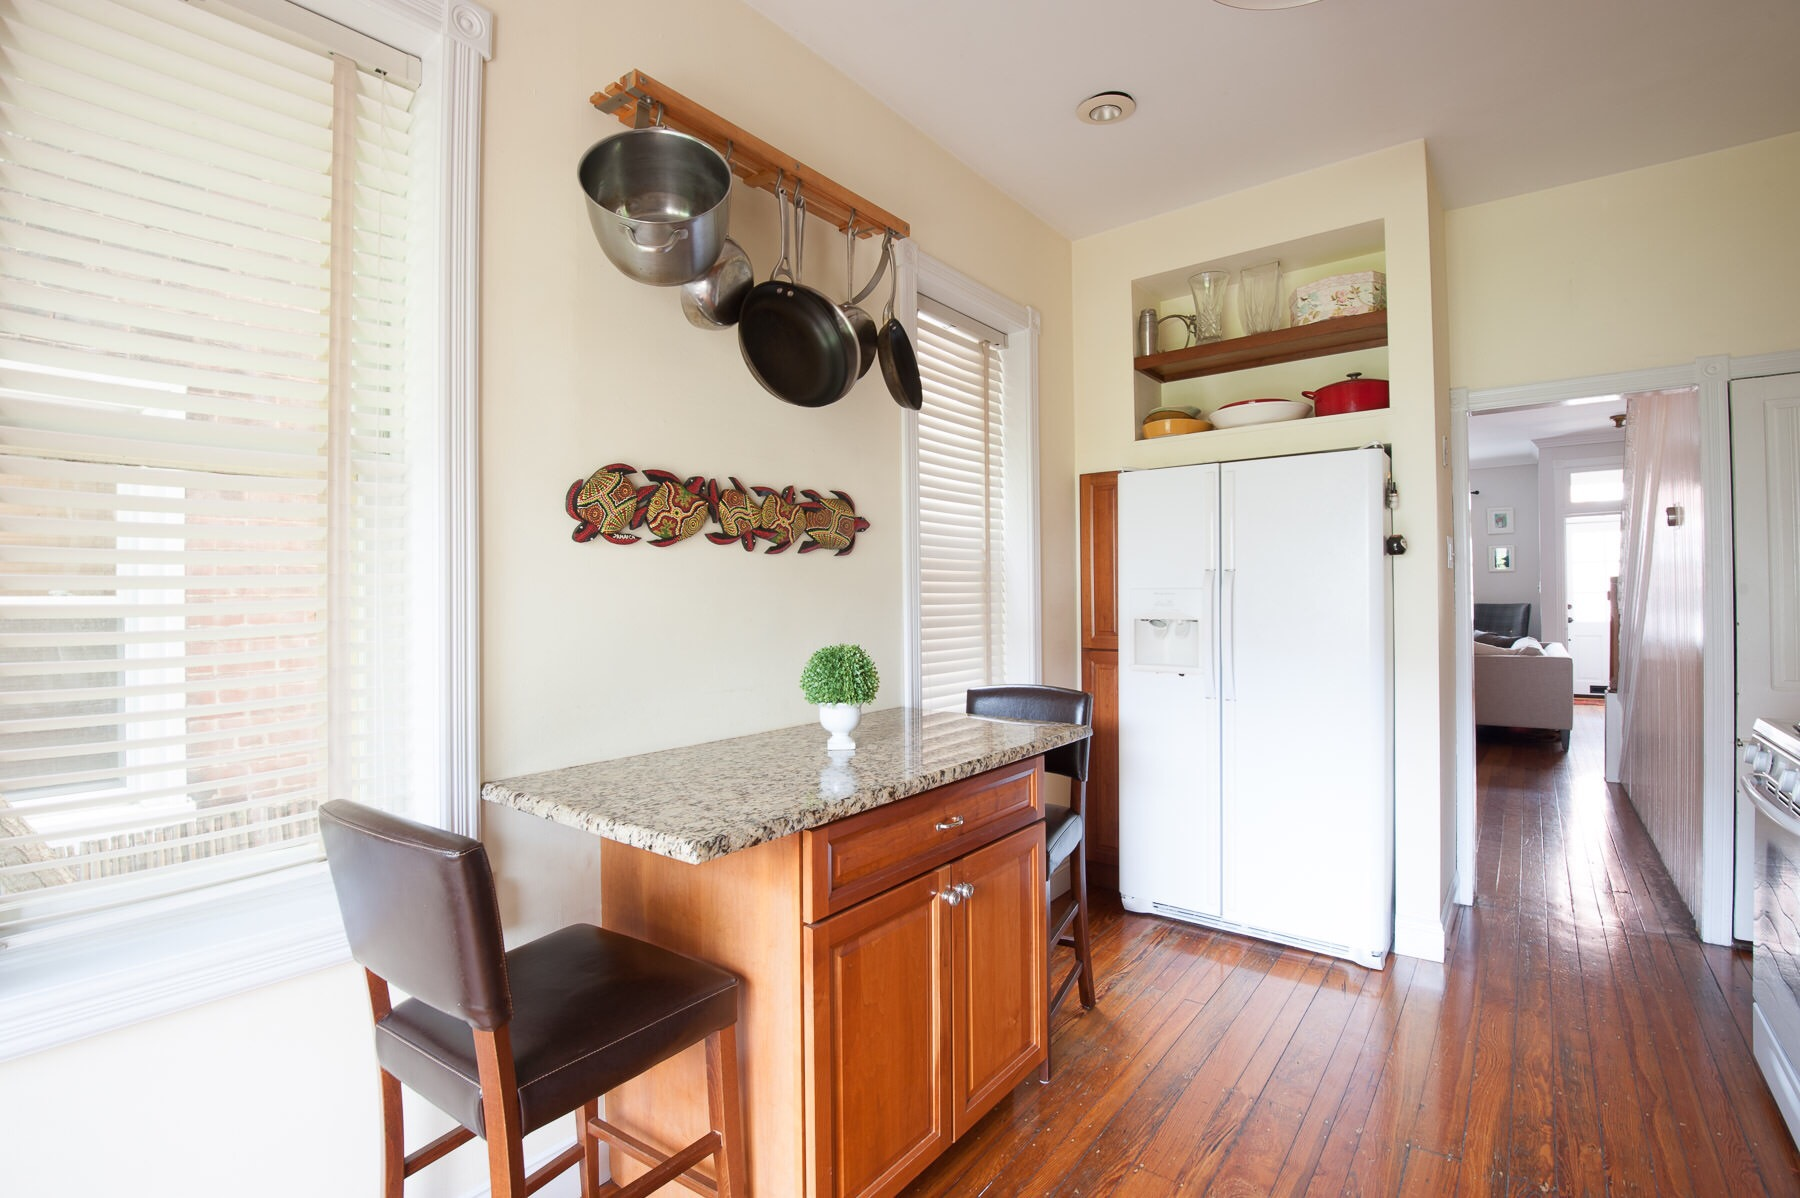 A Philadelphia Row House gets a makeover without renovating. Here's the before - the brown on brown wasn't working for this family, but the cabinets were in good shape, so they opted for a refresh instead of a full renovation.